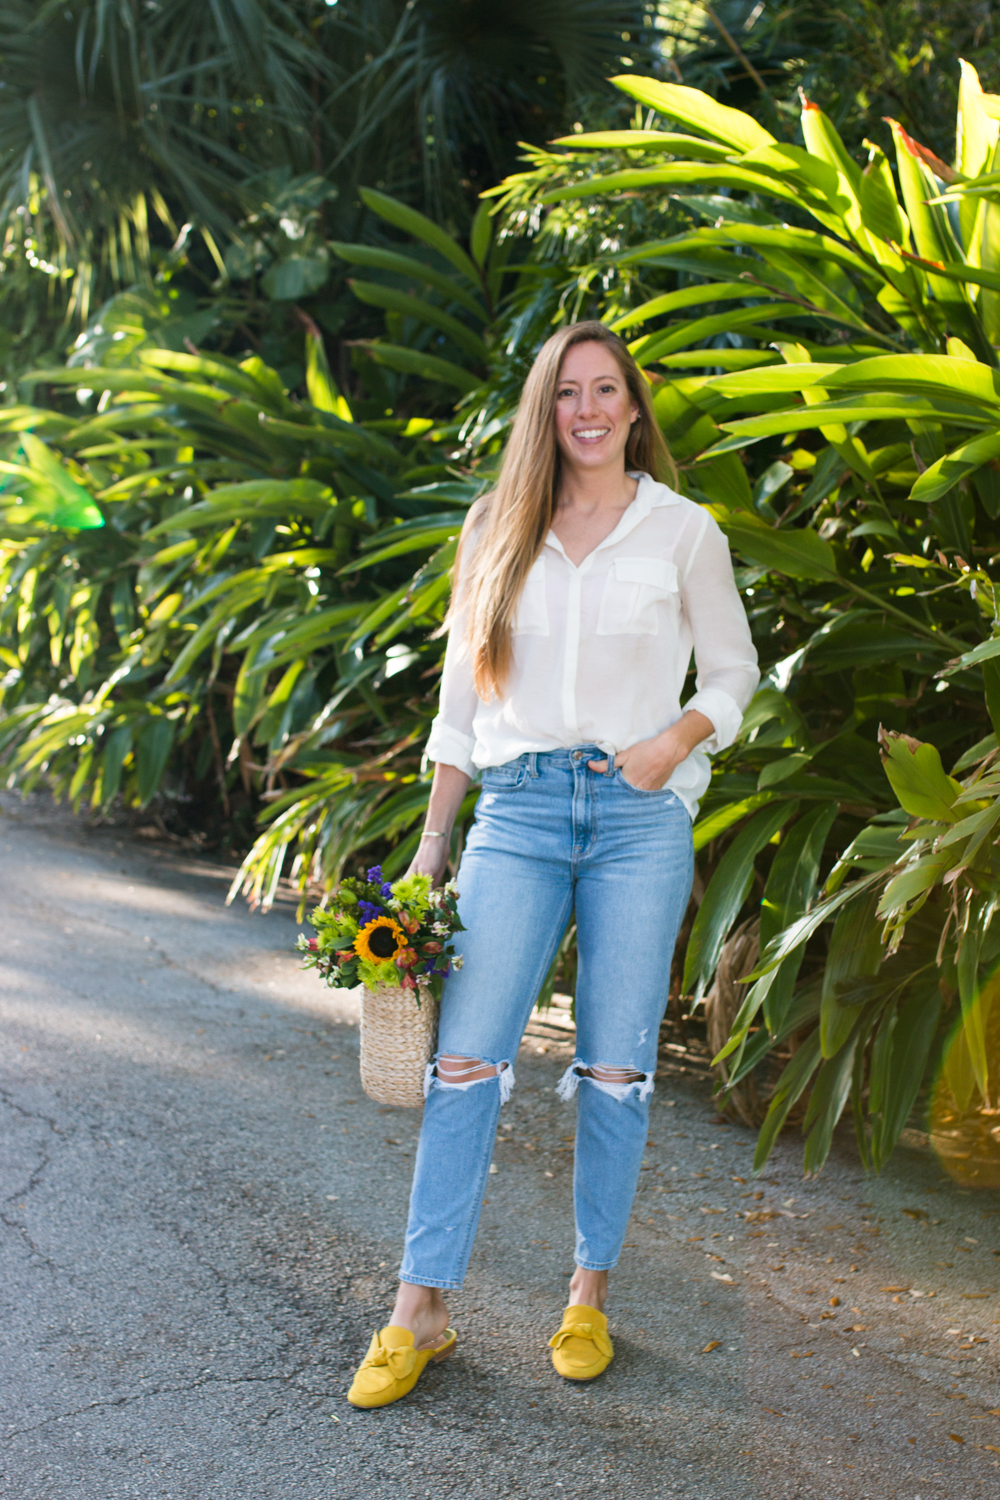 How to Style Mom Jeans / 4 Ways to Wear Mom Jeans / American Eagle Mom Jeans / Simple and Minimal Spring Outfit - Sunshine Style